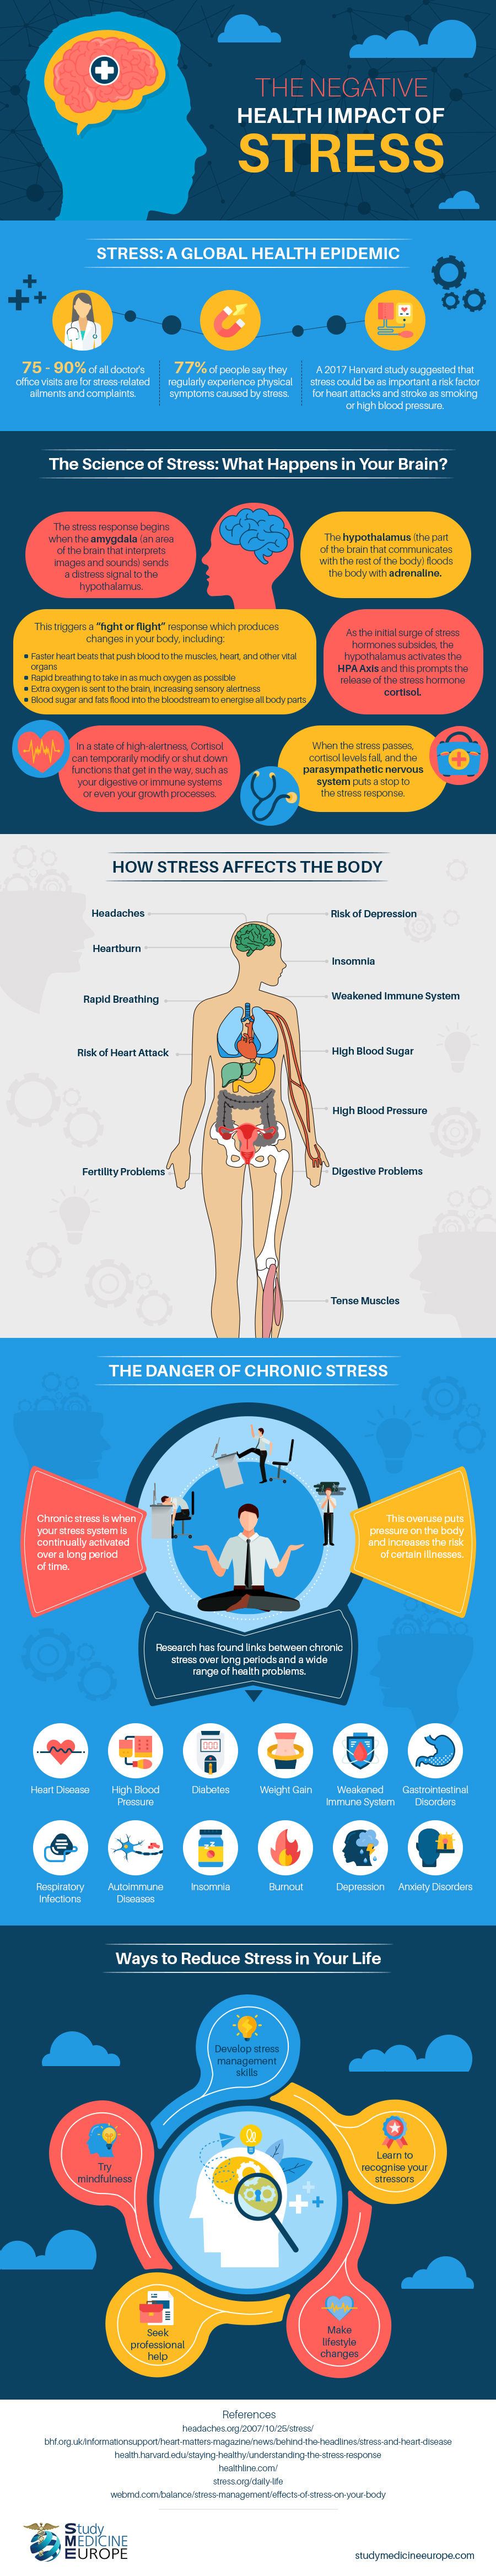 The negative impact of stress